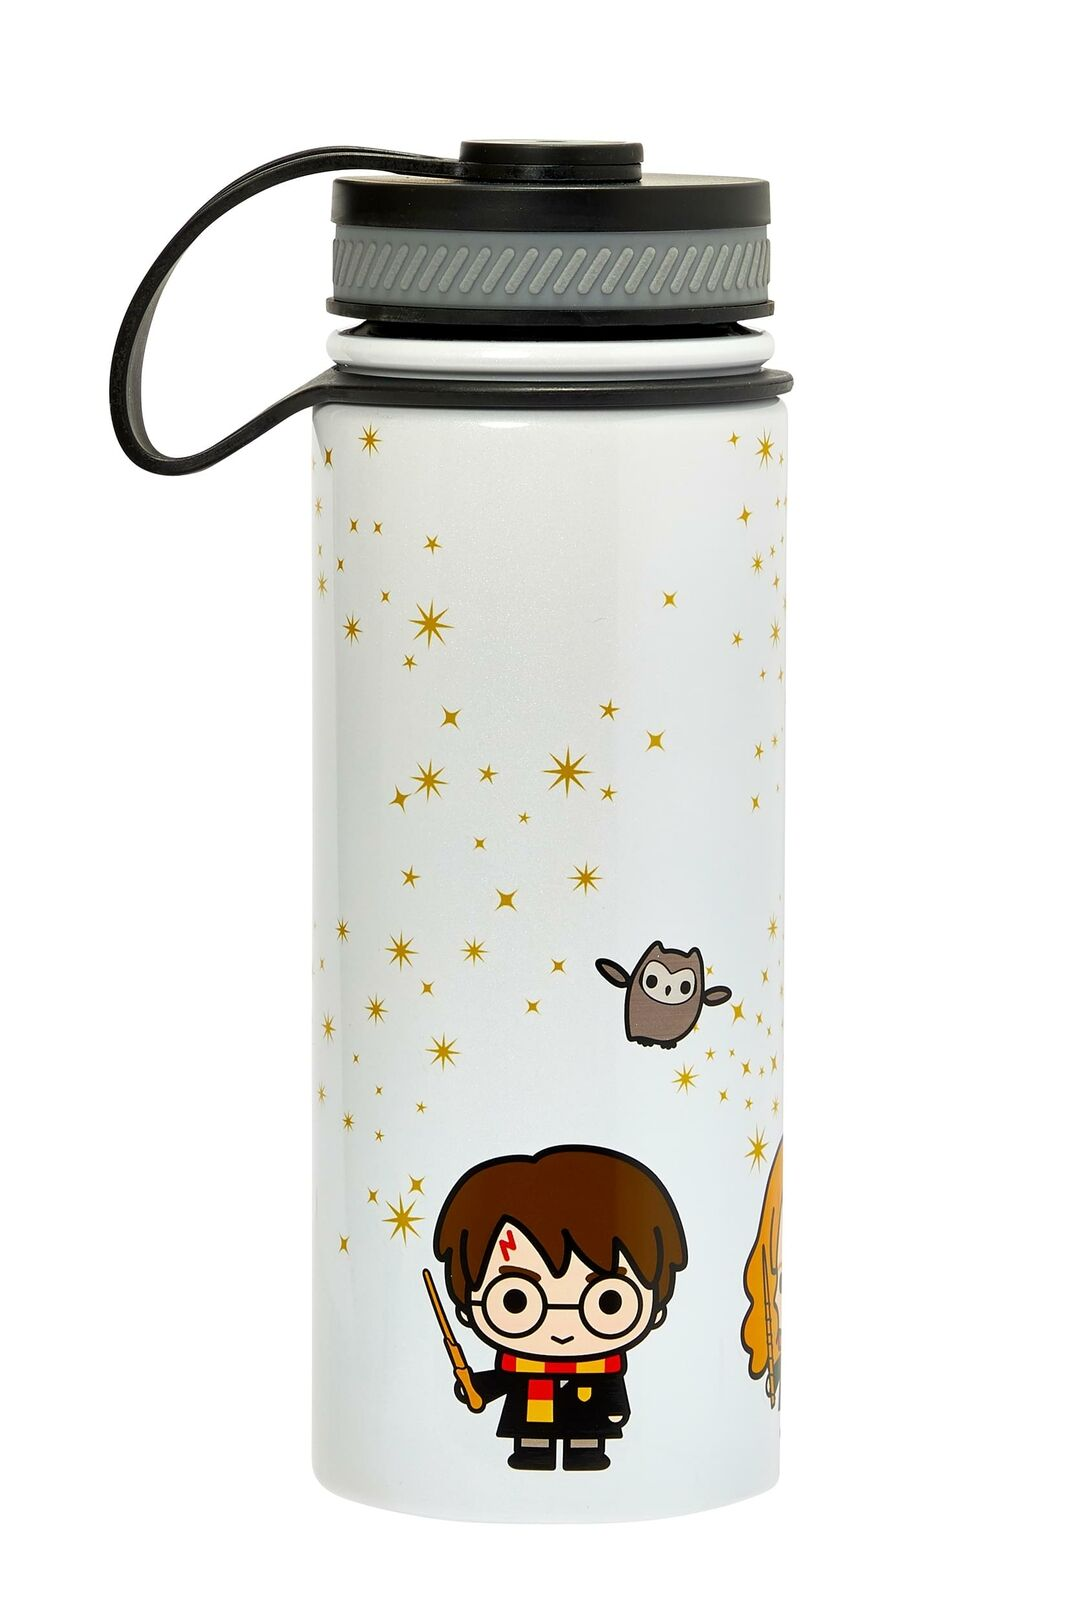 UPC 882041047332 product image for Harry Potter Chibi Characters 18.6-oz Stainless Steel Insulated Water Bottle | upcitemdb.com